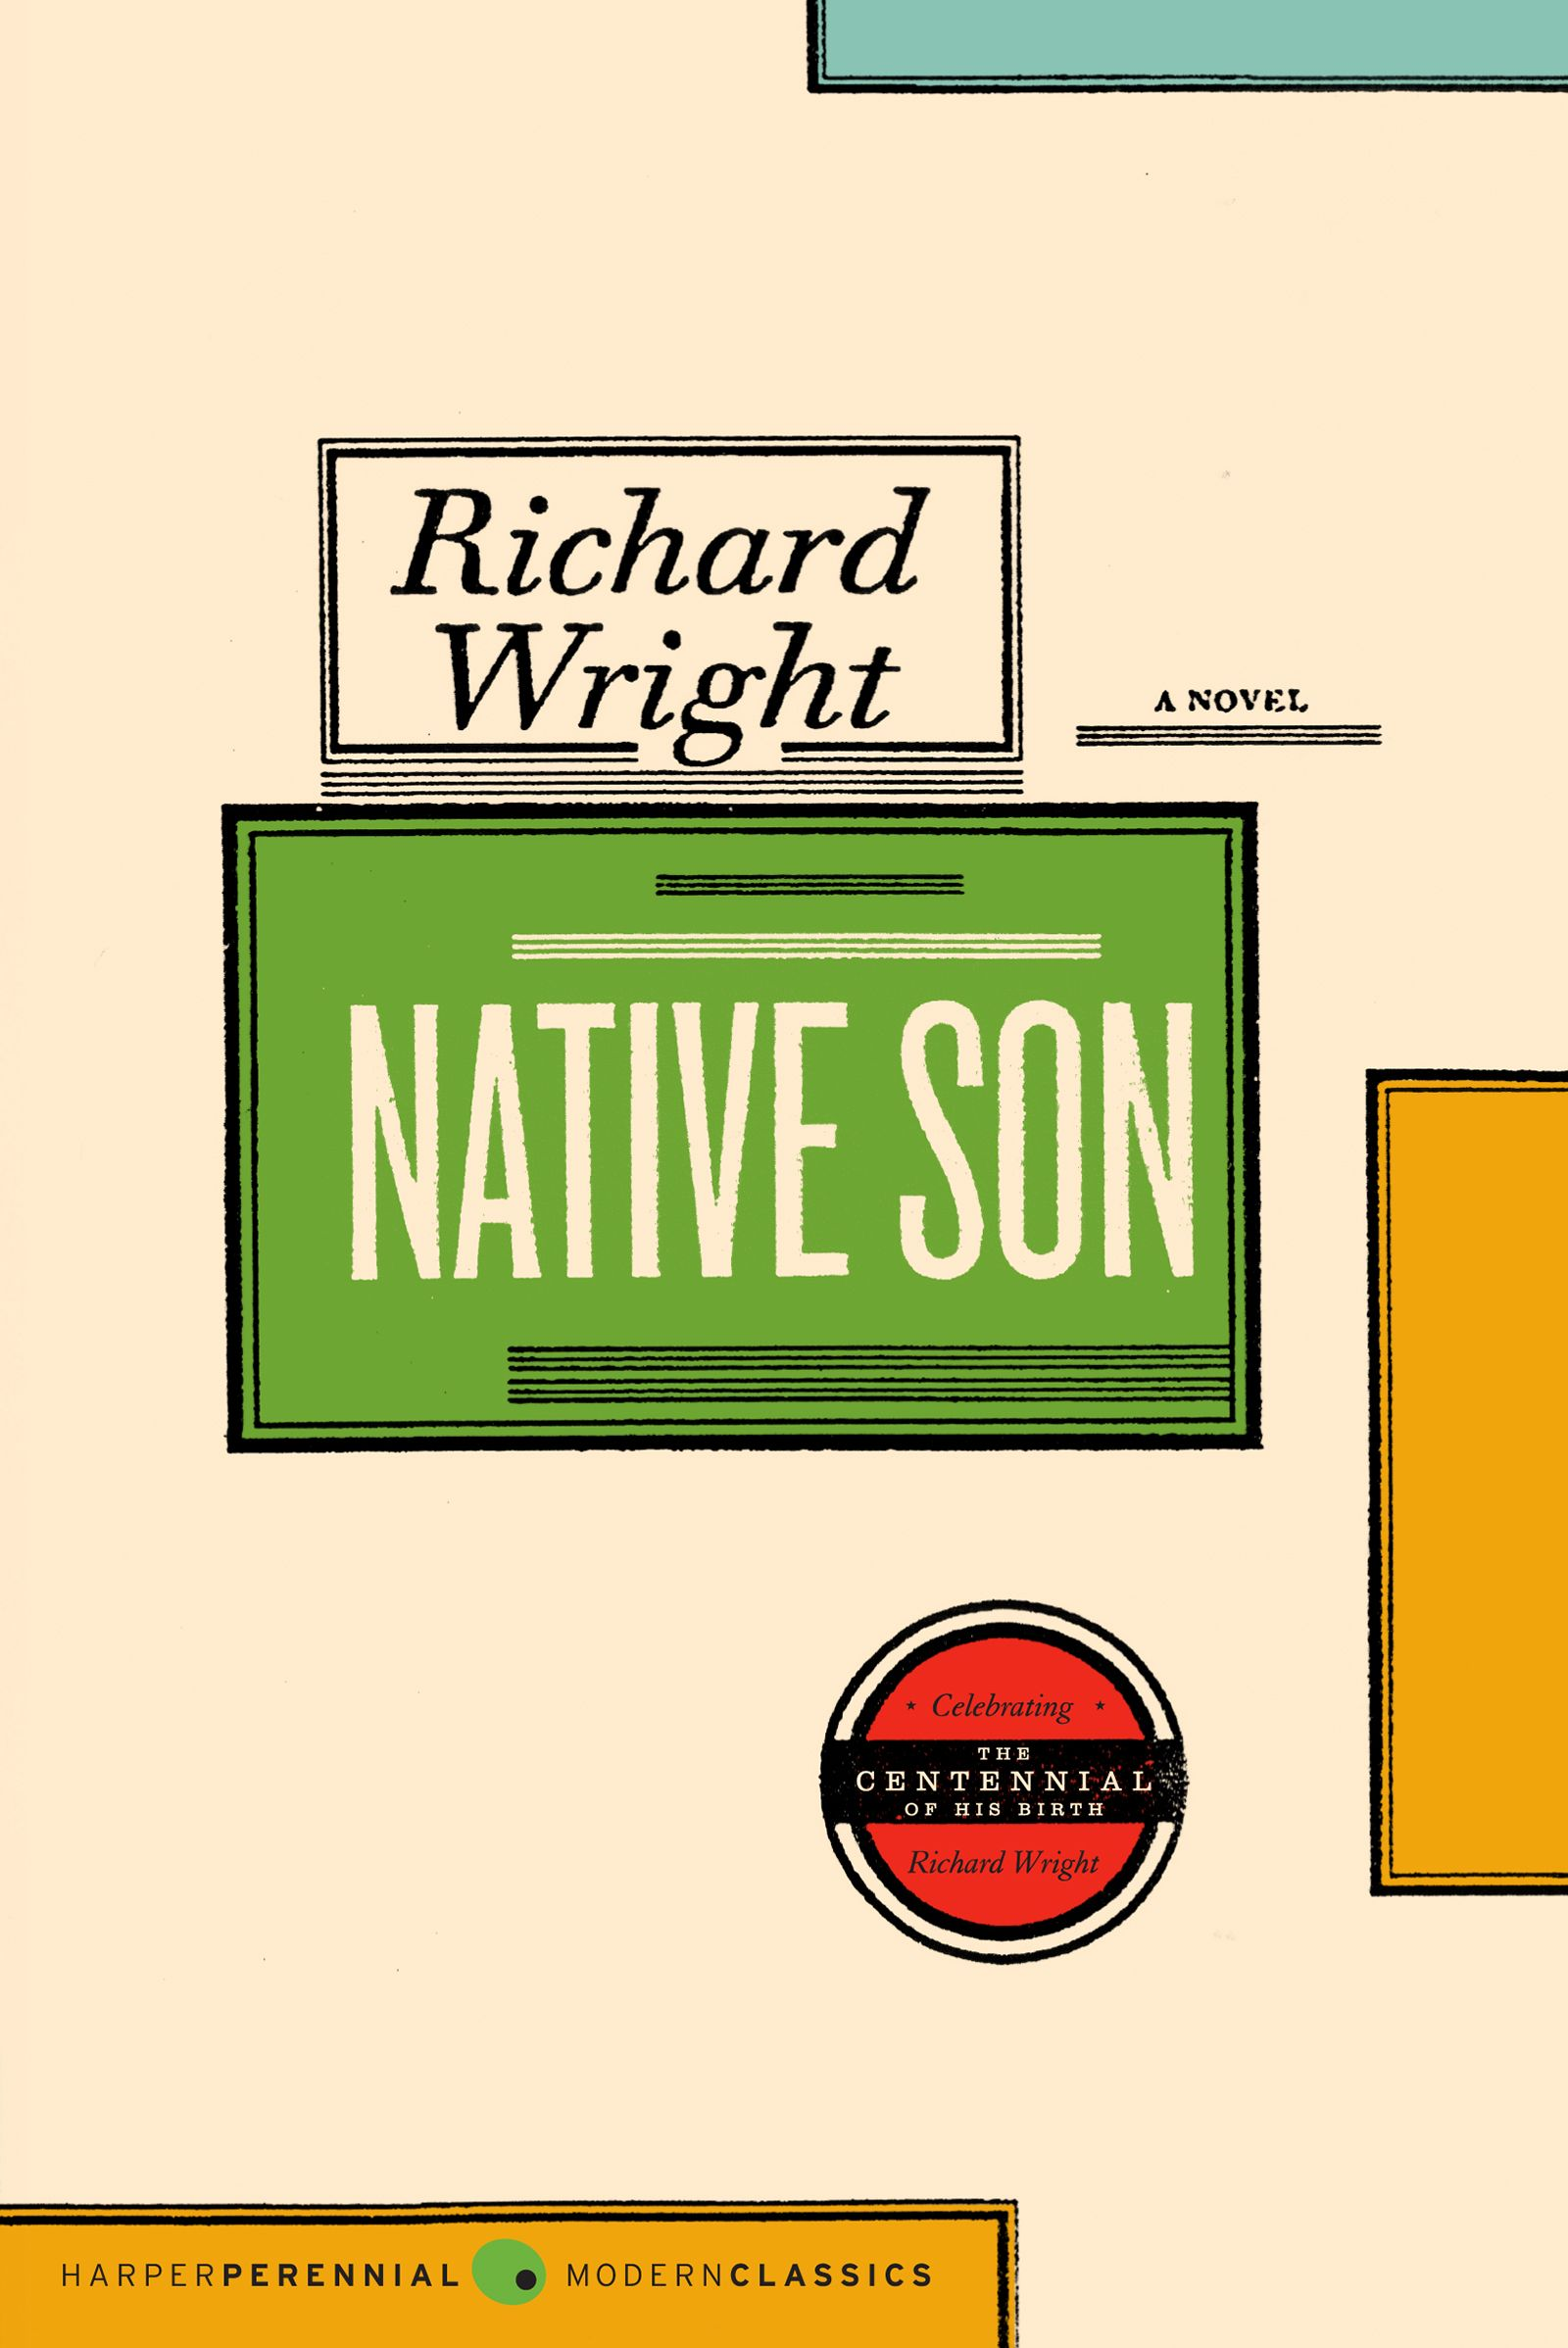 bigger native son essay The trial of bigger thomas: race, gender, and trespass i bennett capers richard wright's native son,1 the first novel by an african american to be featured as a main selection of the book-of-the-month club,2 was nothing short.